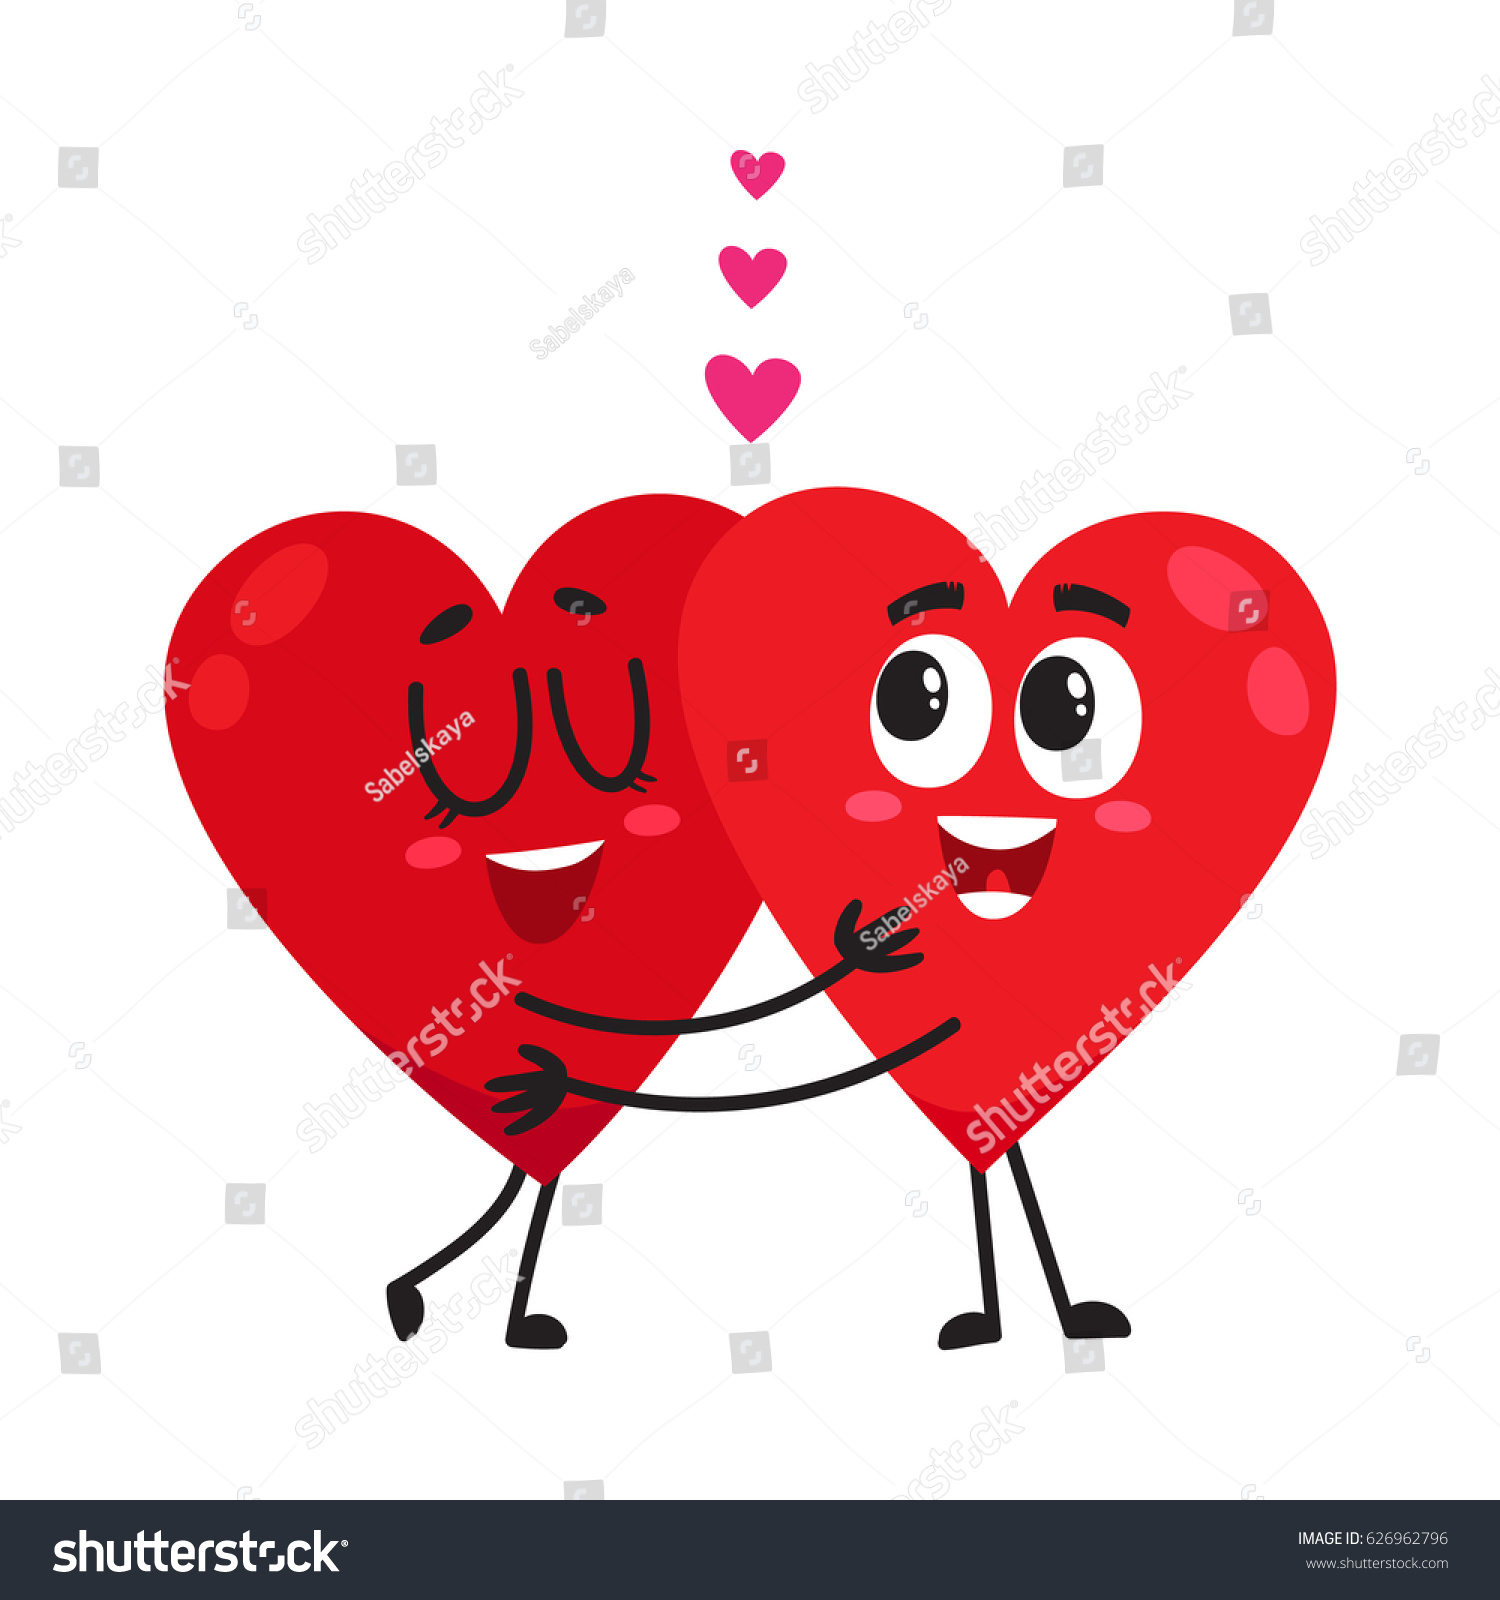 Two Hearts Hugging Embracing Each Other Stock Vector